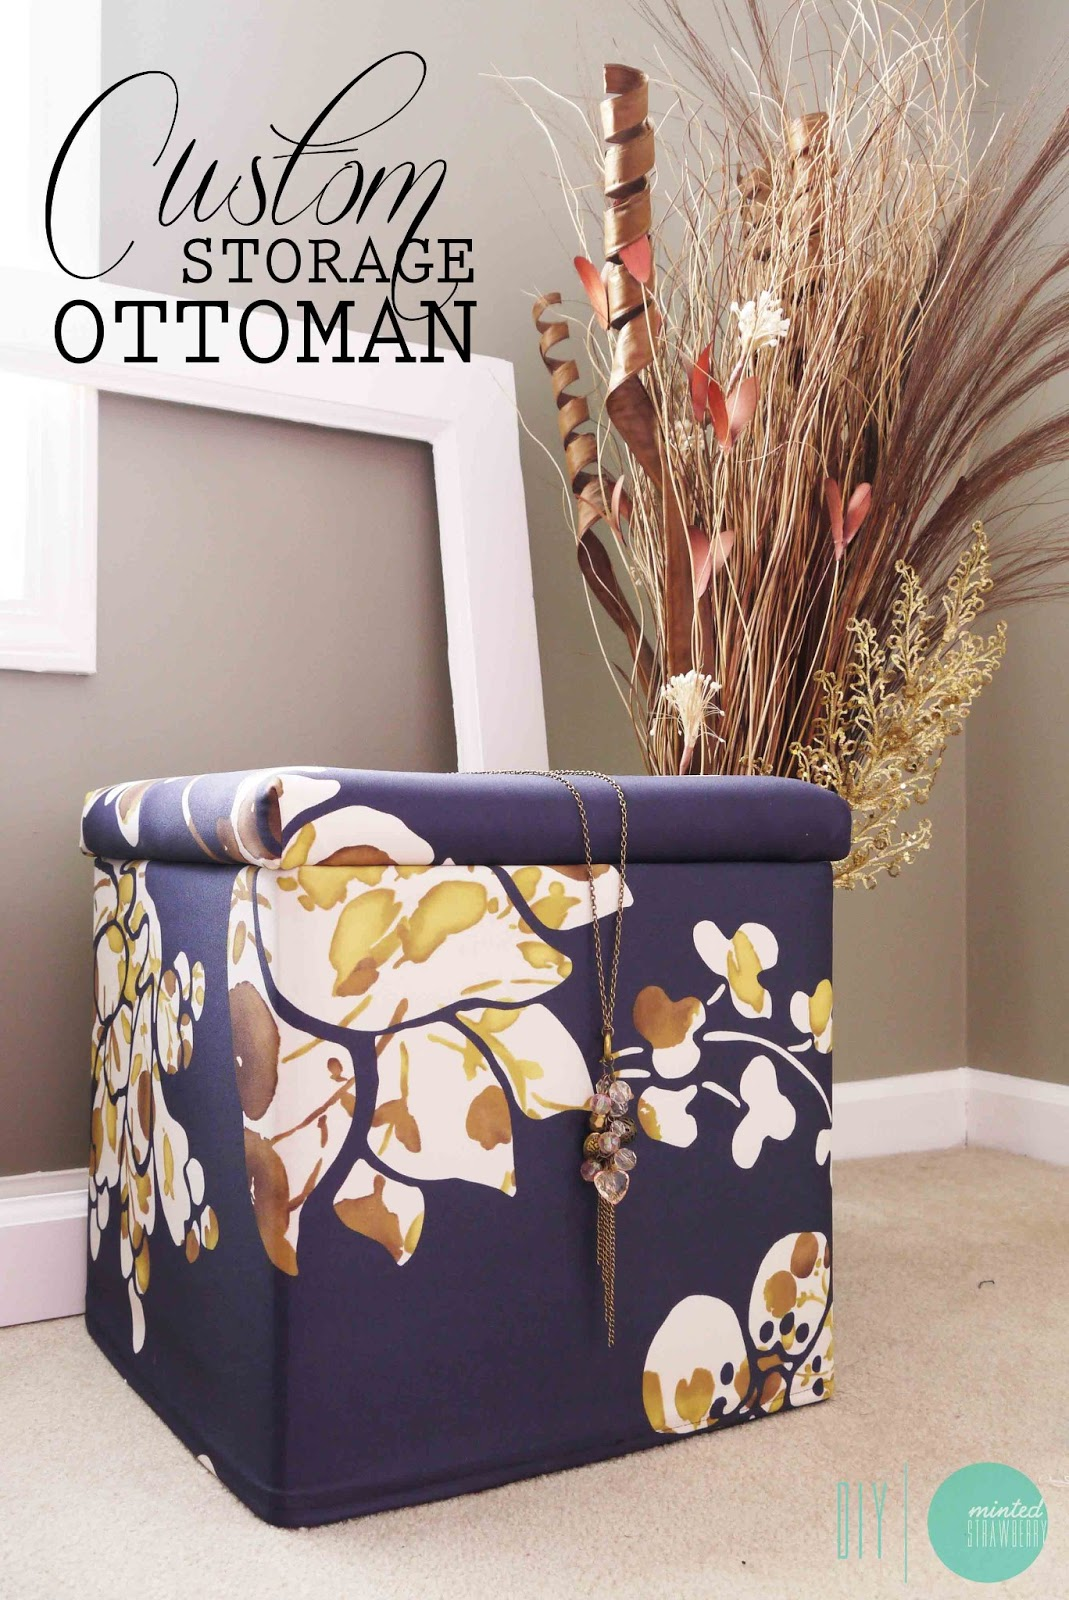 diy custom storage ottomans minted strawberry